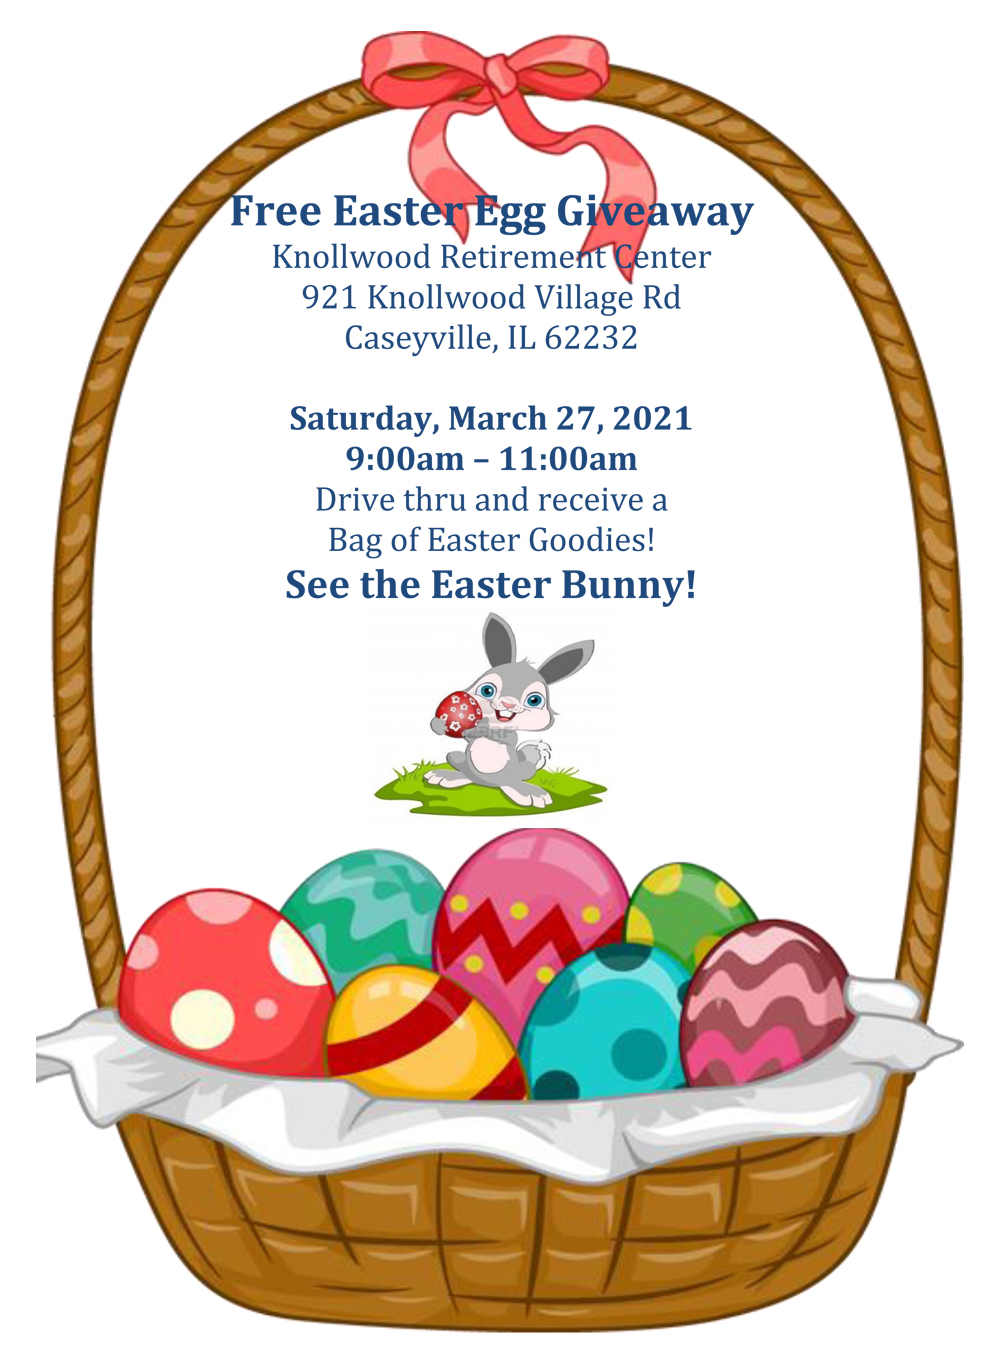 Knollwood Retirement Center Free Easter Egg Giveaway